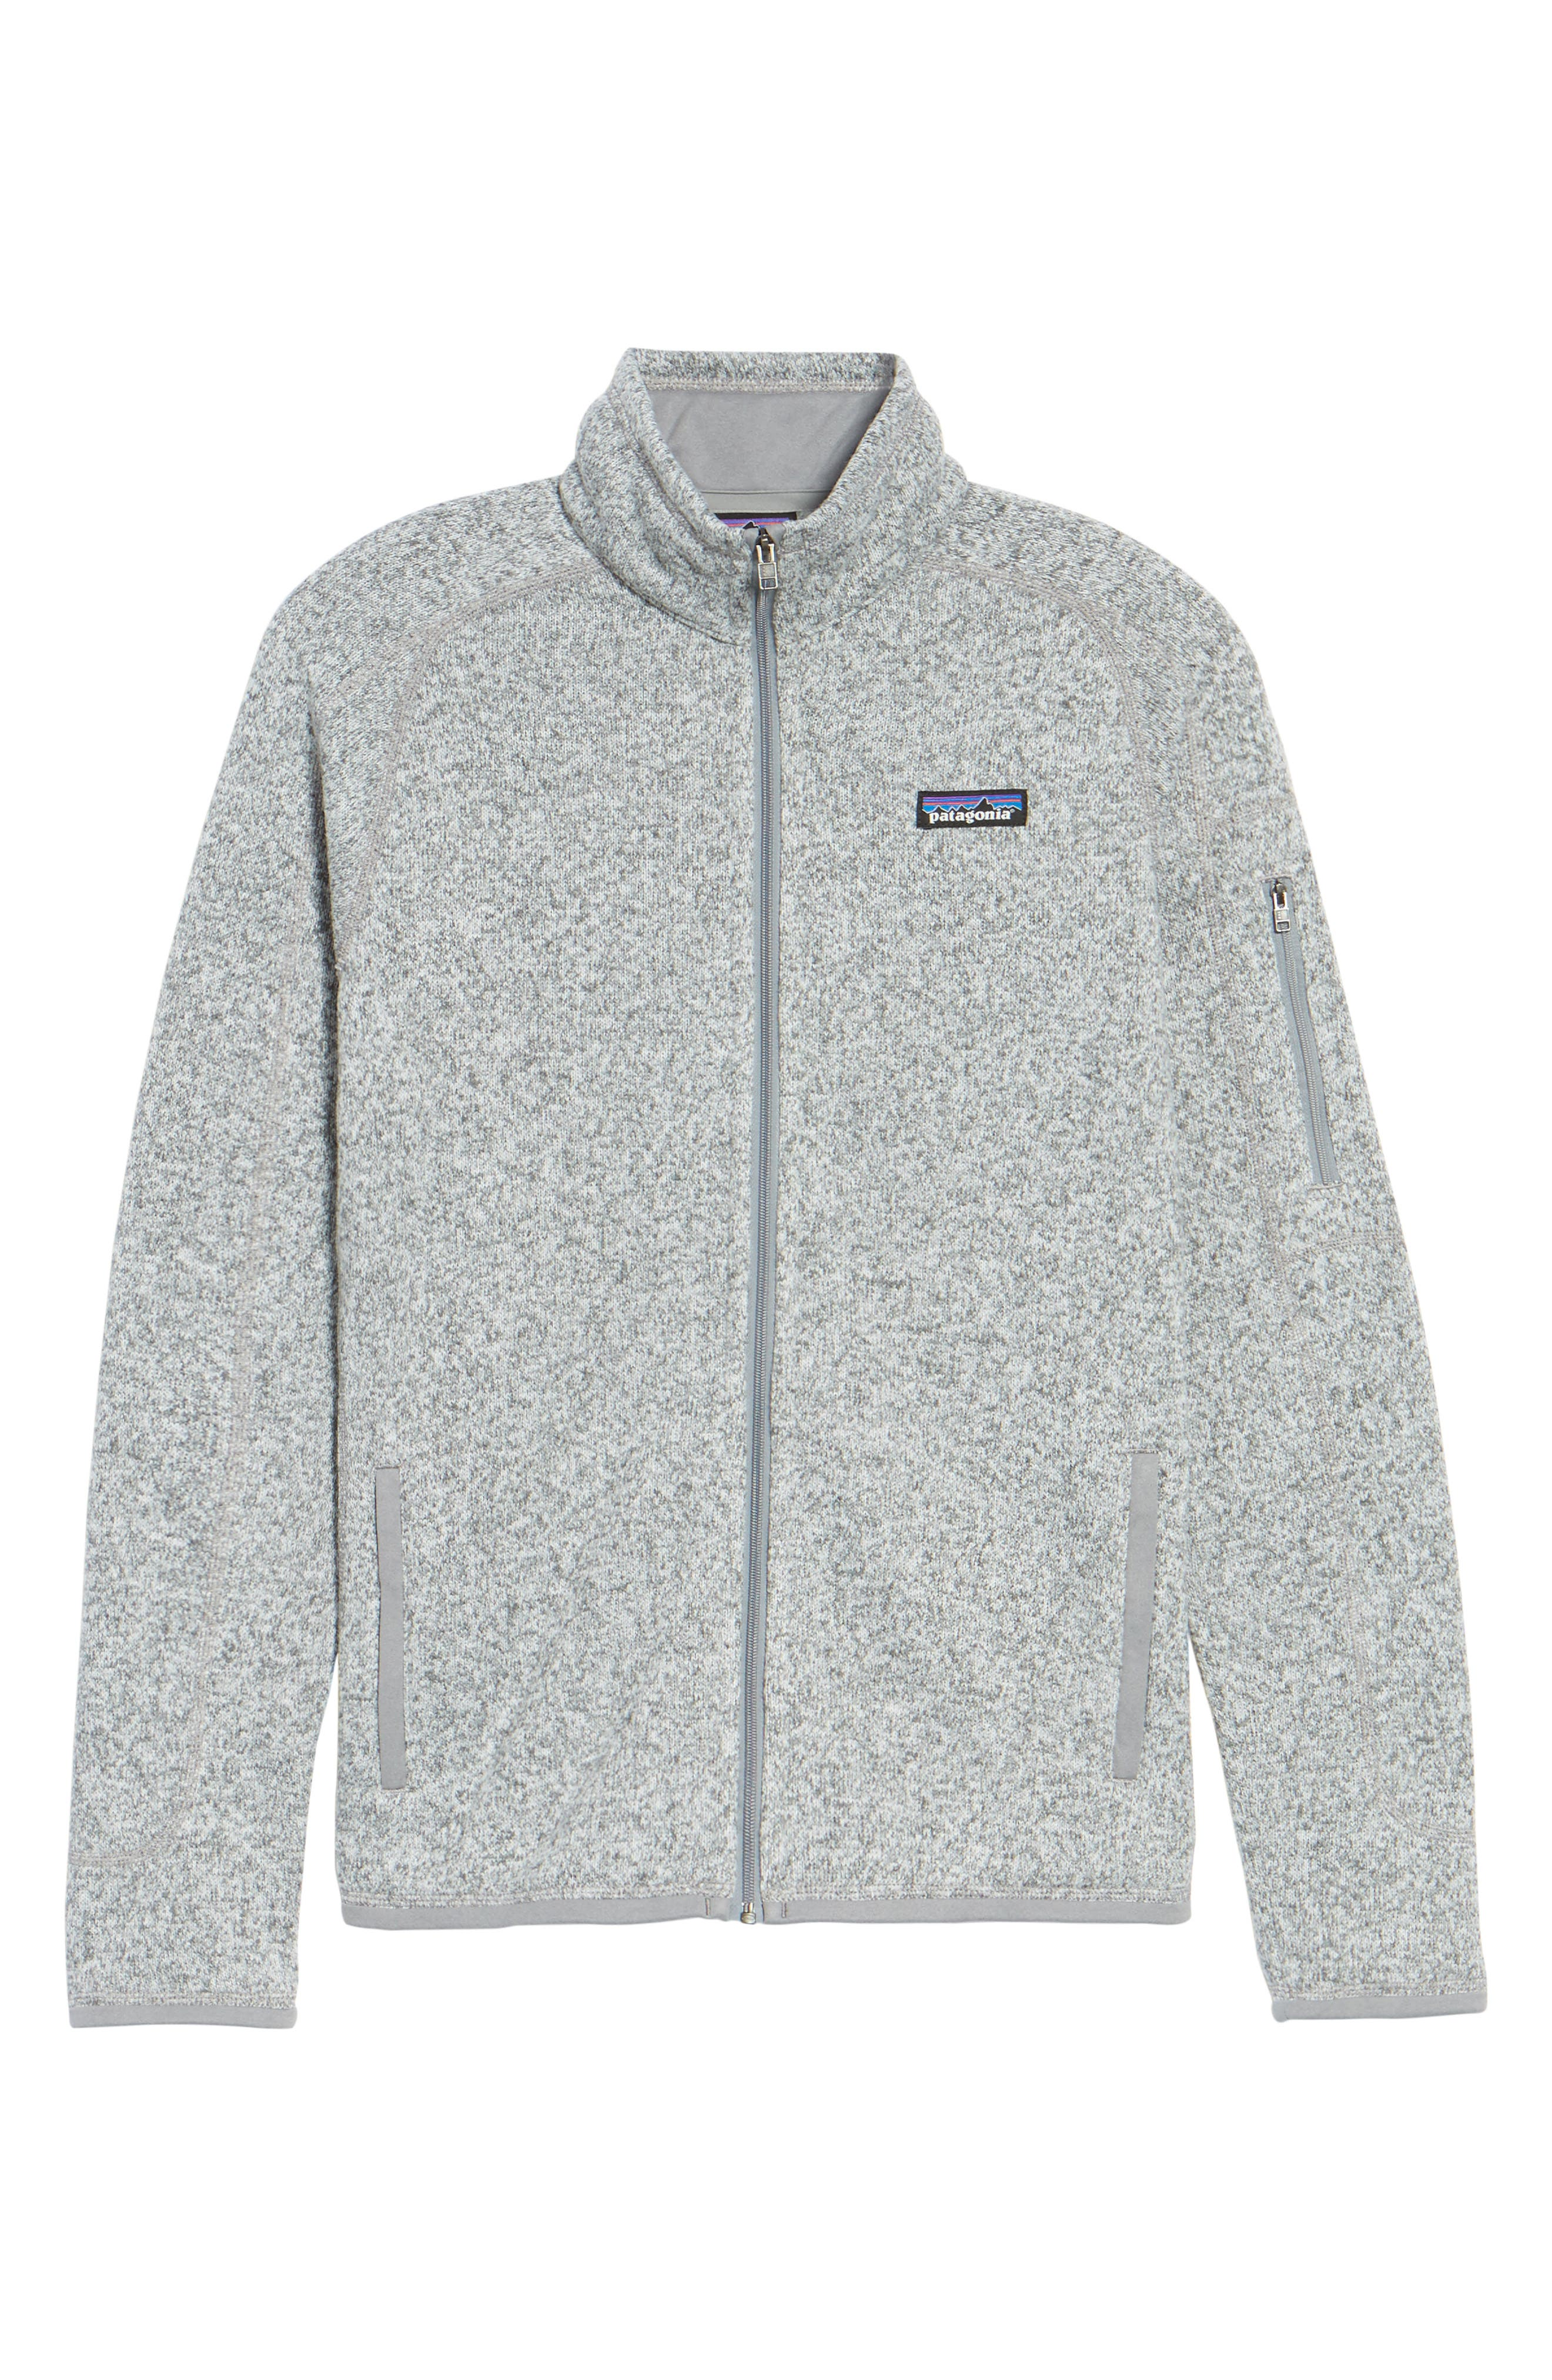 'BetterSweater' Jacket,                         Main,                         color, BIRCH WHITE